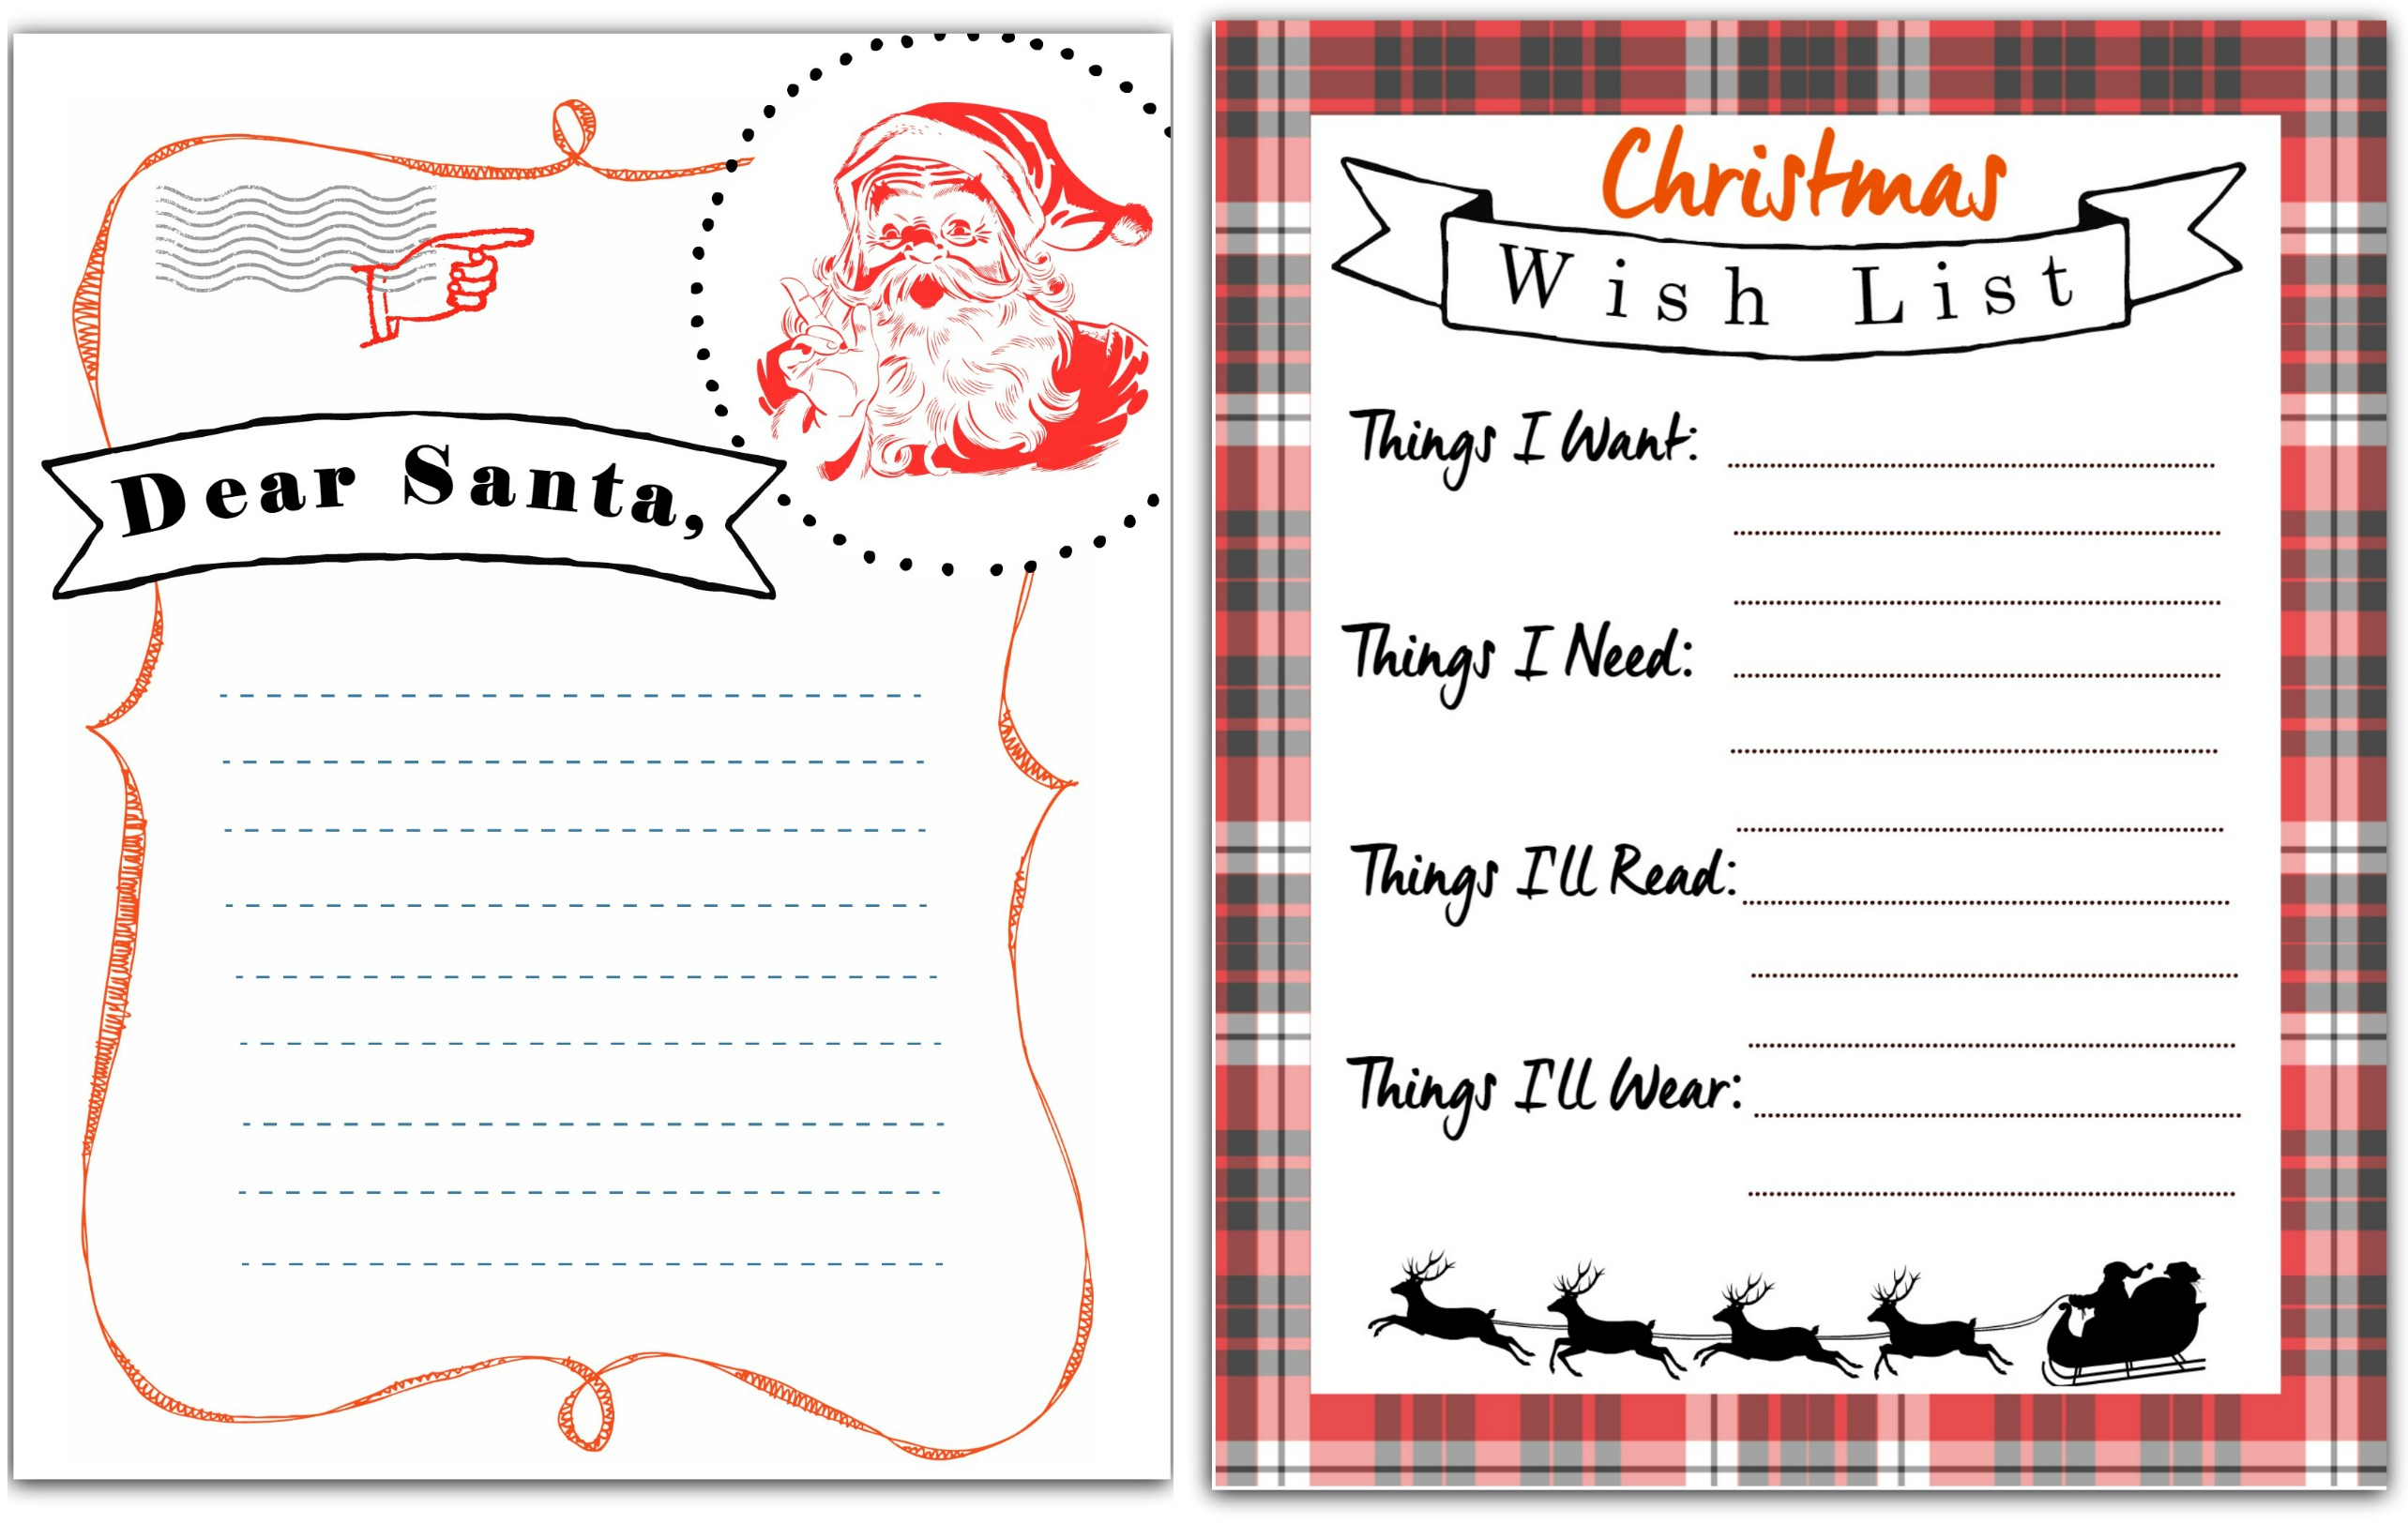 image regarding Printable Letters to Santa titled Absolutely free Printable Letter toward Santa Xmas Drive Listing - Hip2Help you save